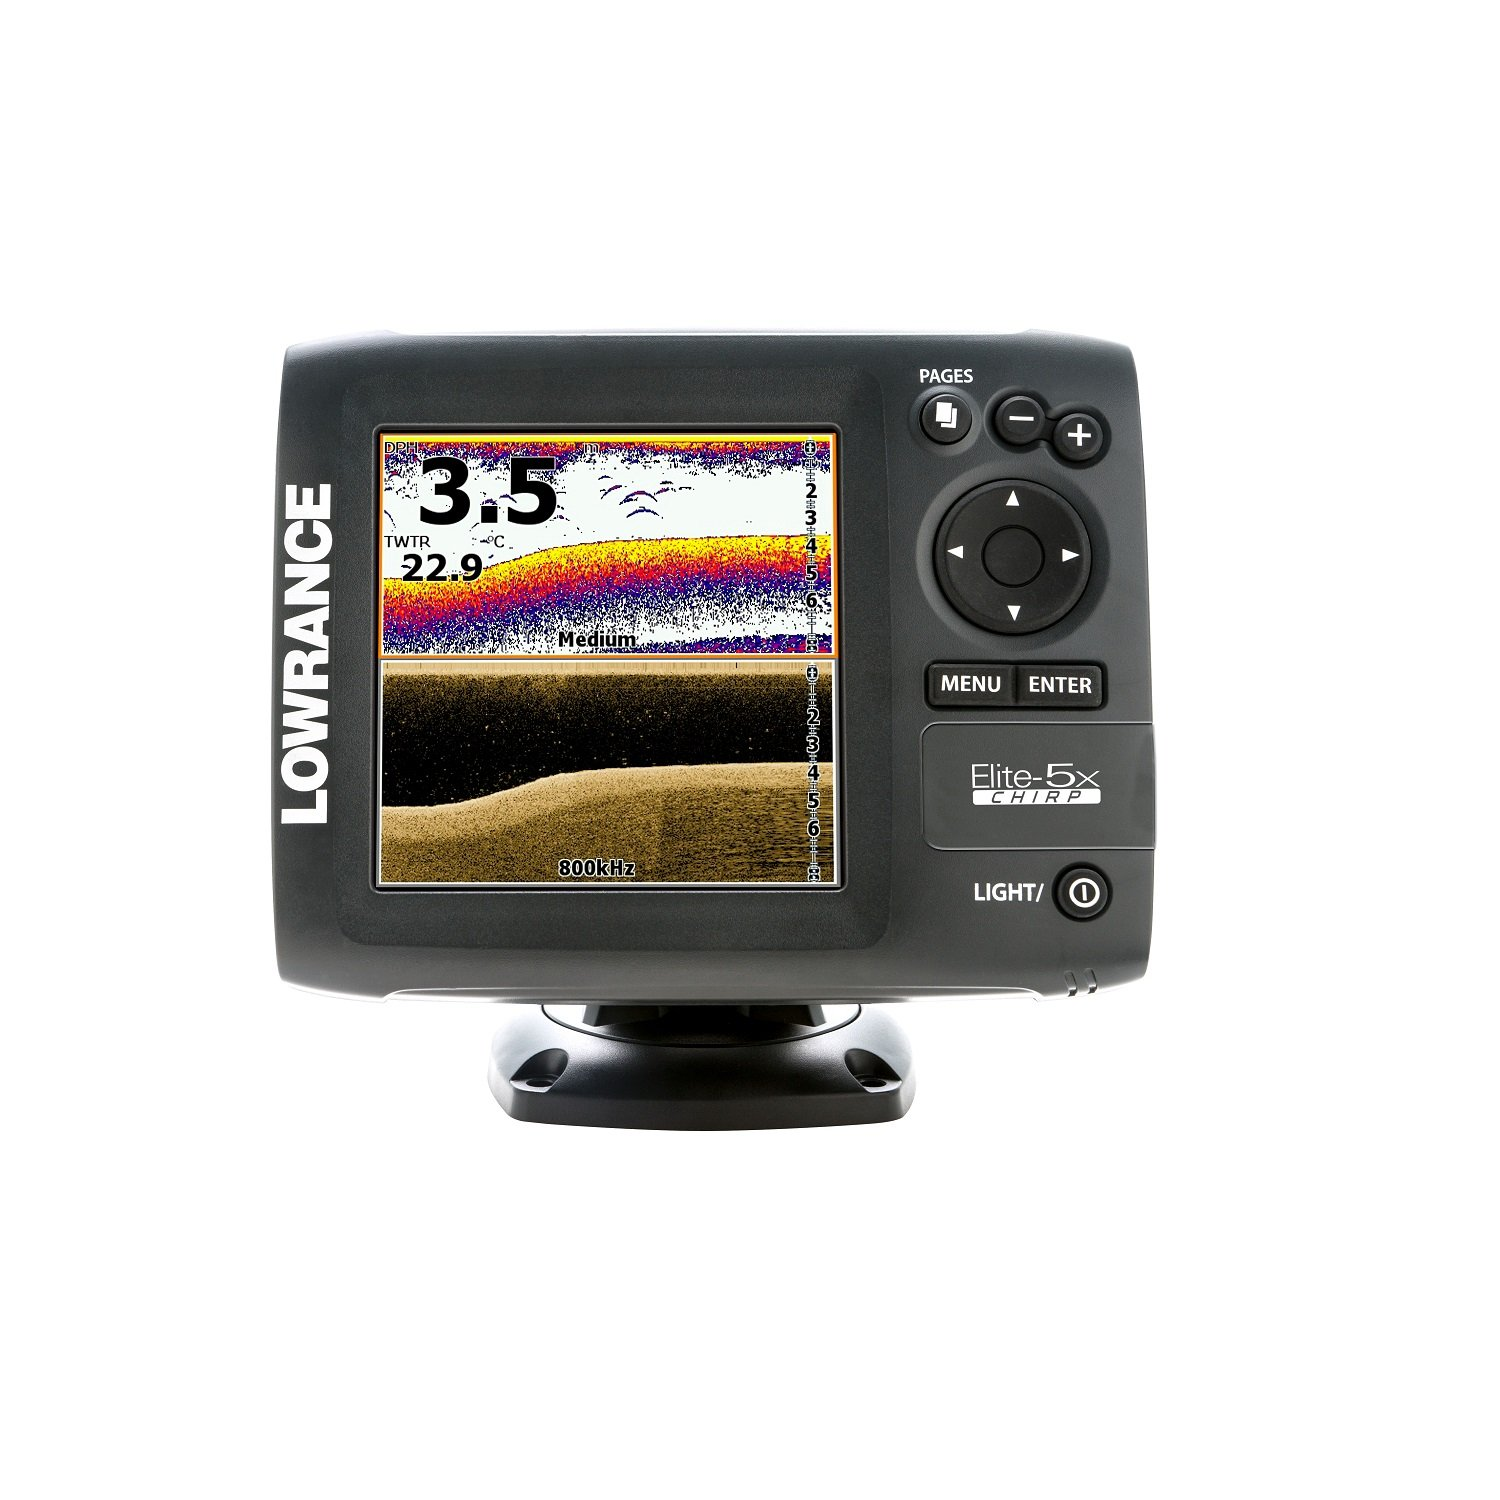 Lowrance 000 11657 001 Elite 5x Chirp With 83 200 455 Warn 9 5ti Wiring Diagram 800 Transducer Cell Phones Accessories